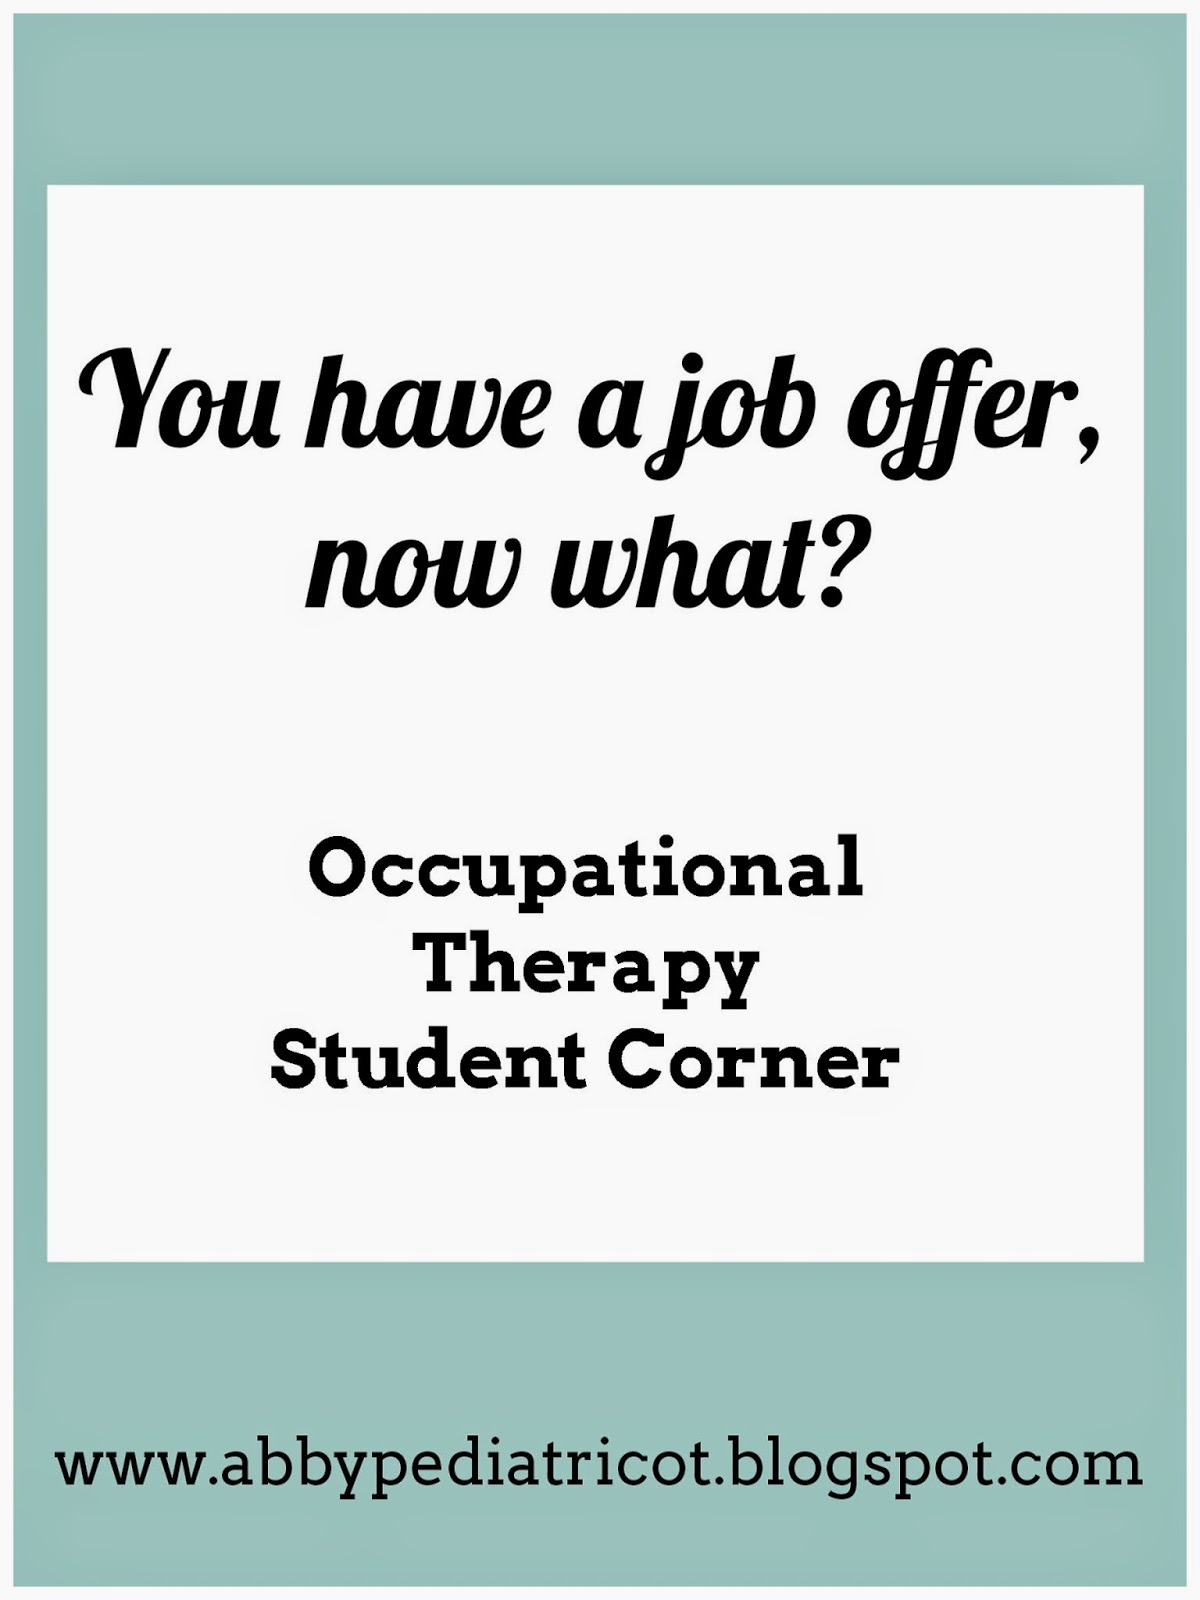 ot cafe 2015 here are a few things to keep in mind when choosing the best job for you